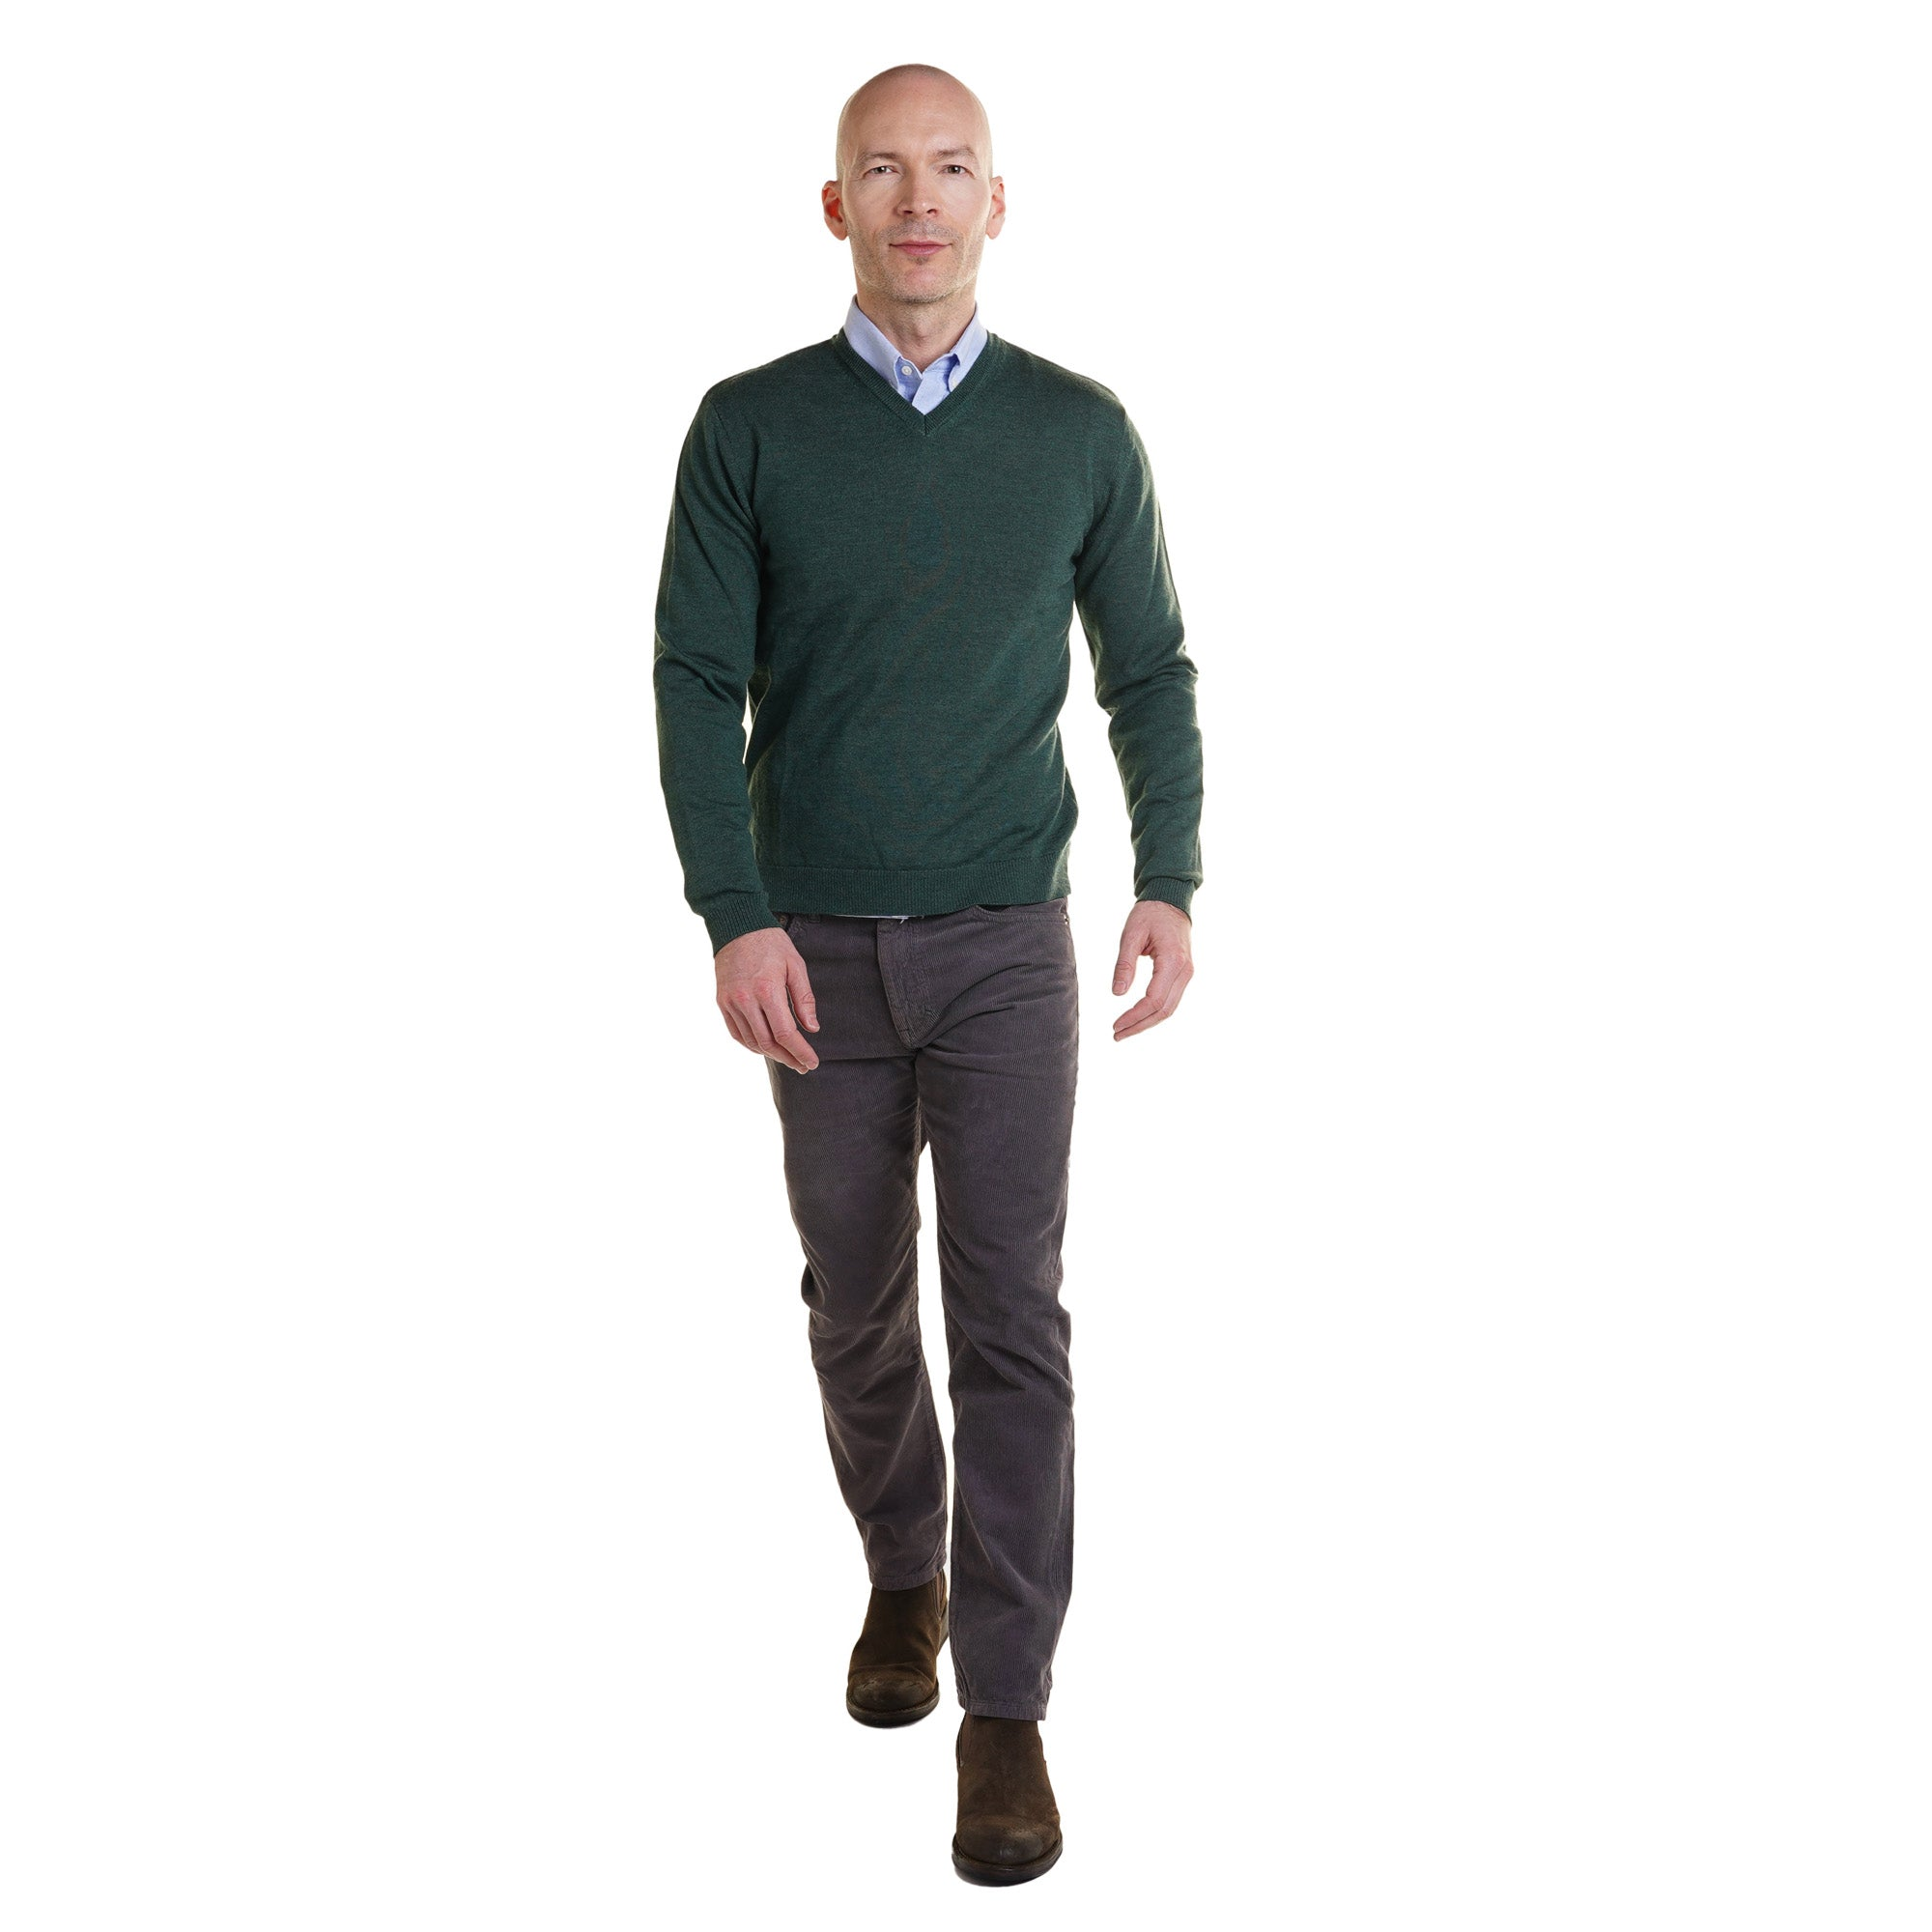 Zegna Merino Wool V Neck Sweaters - Hunter Green